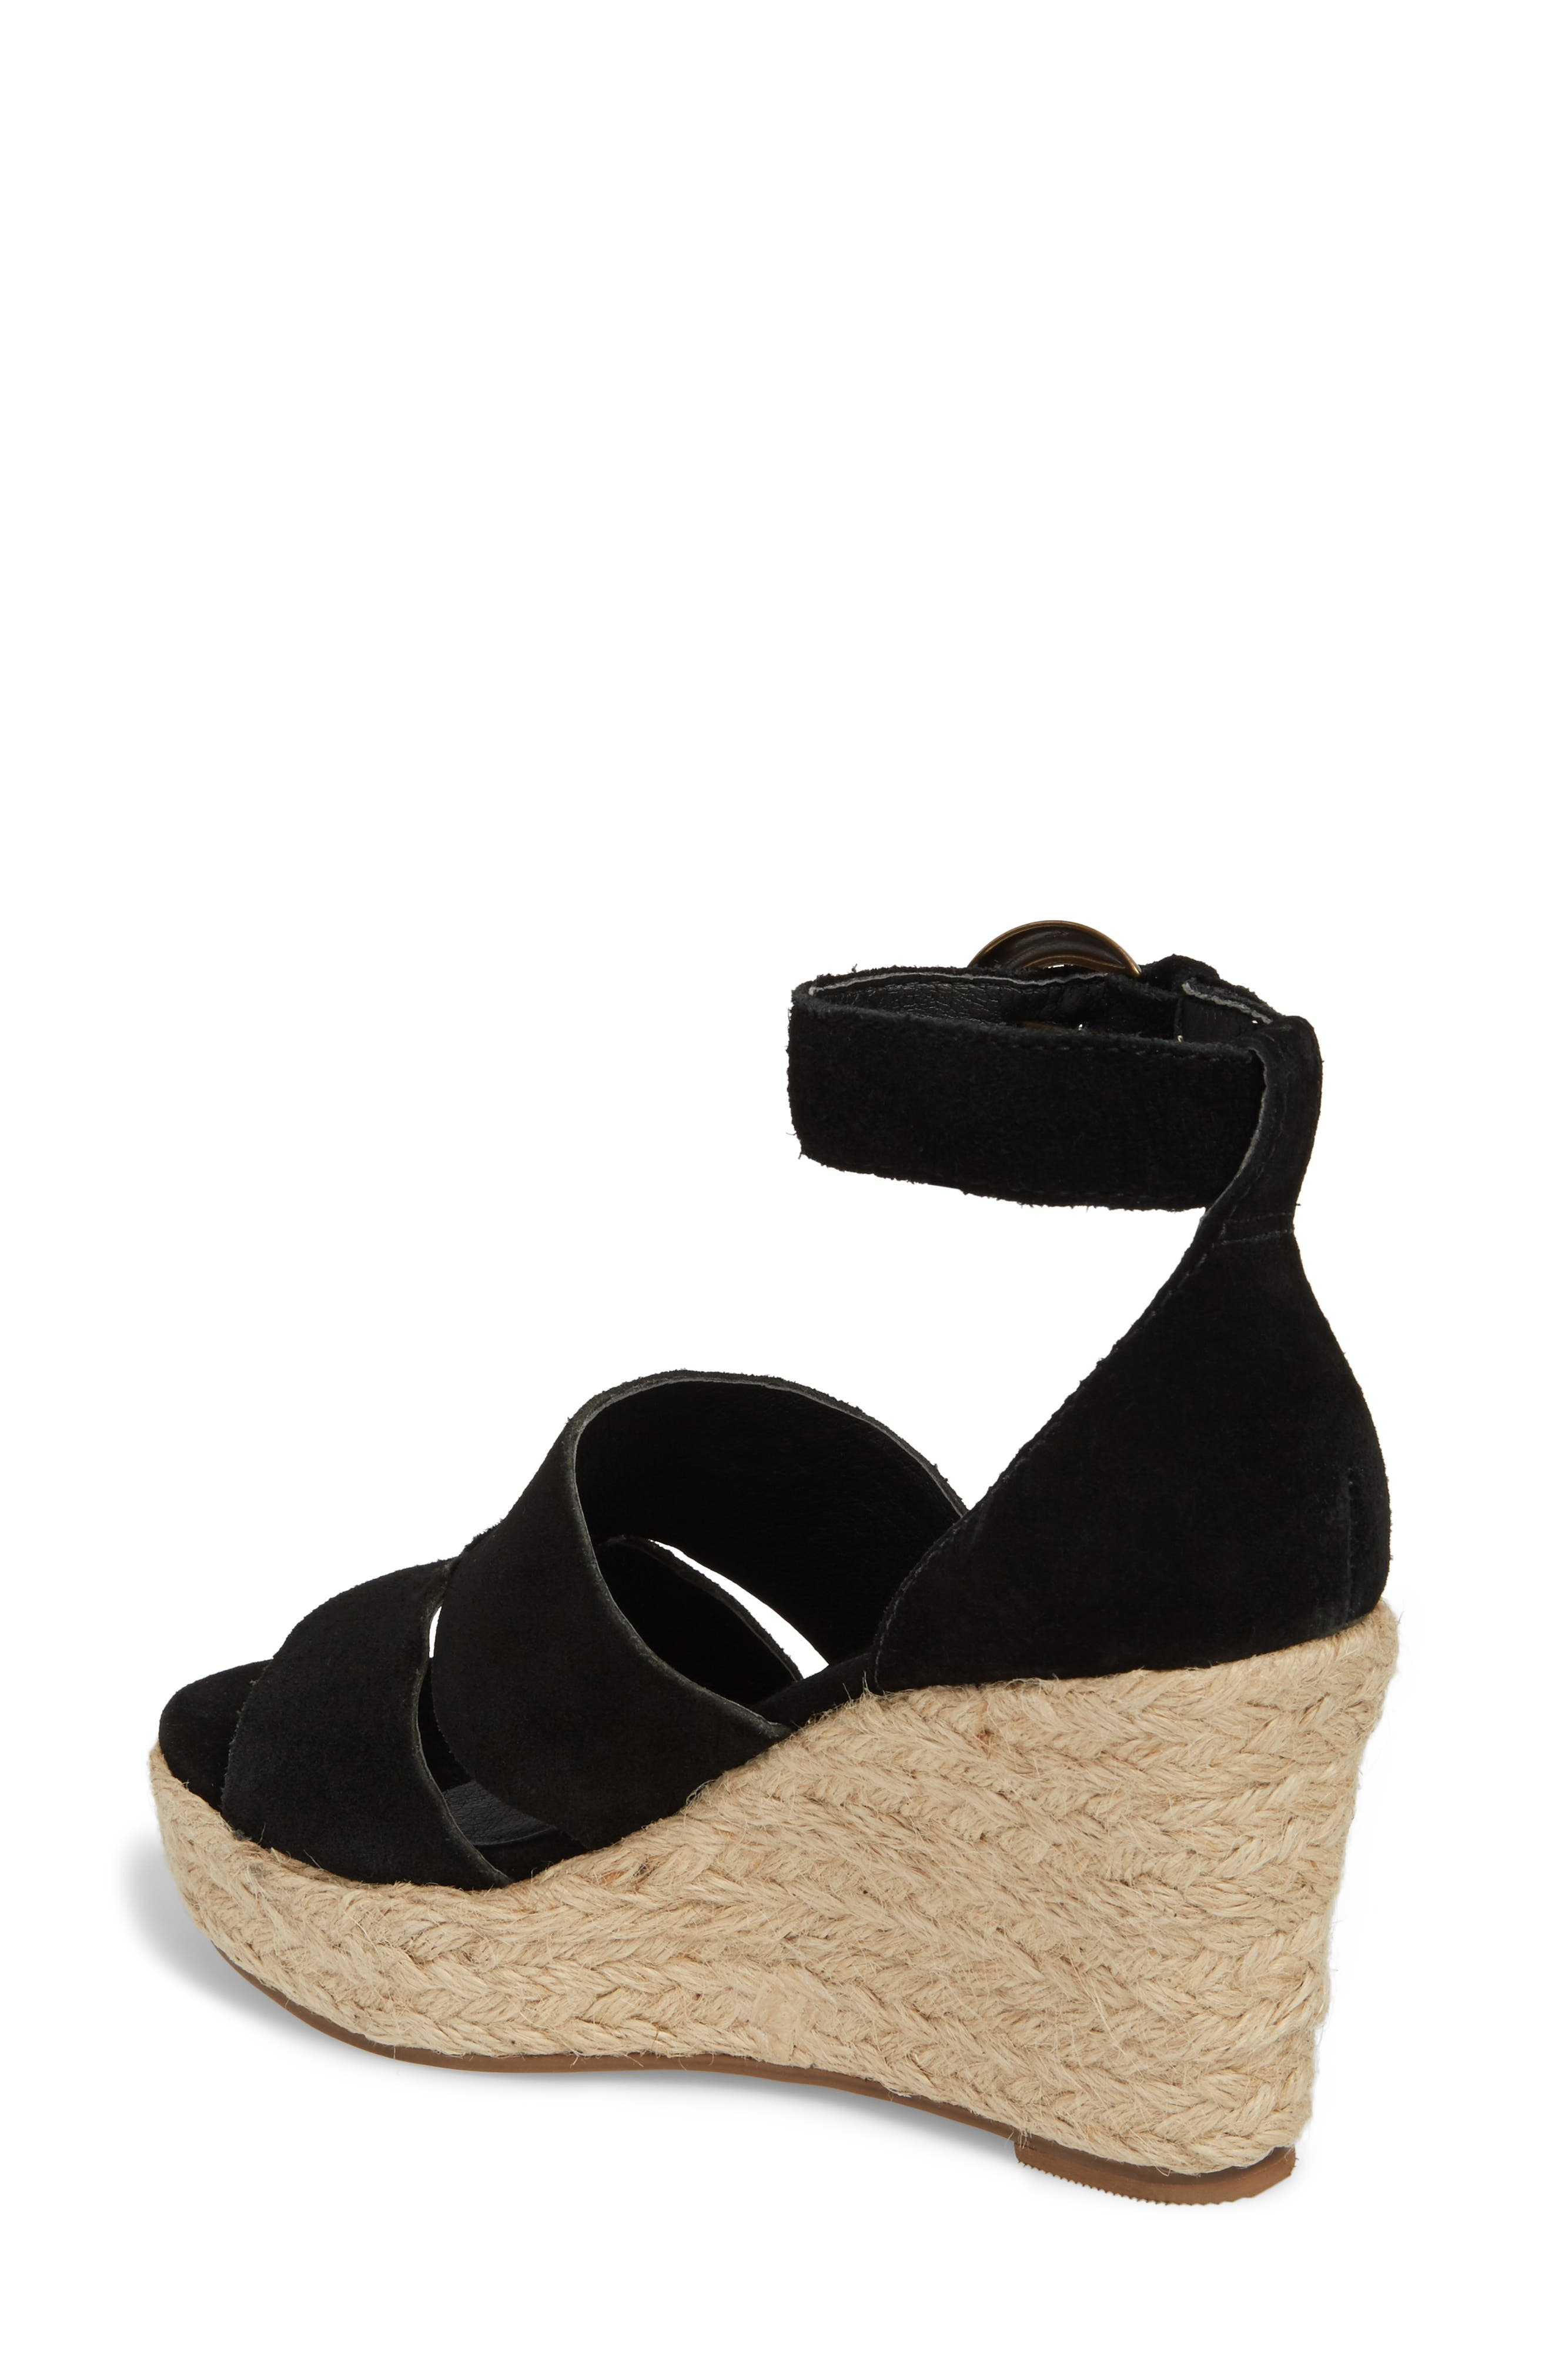 Cha Cha Espadrille Wedge Sandal,                             Alternate thumbnail 2, color,                             BLACK SUEDE